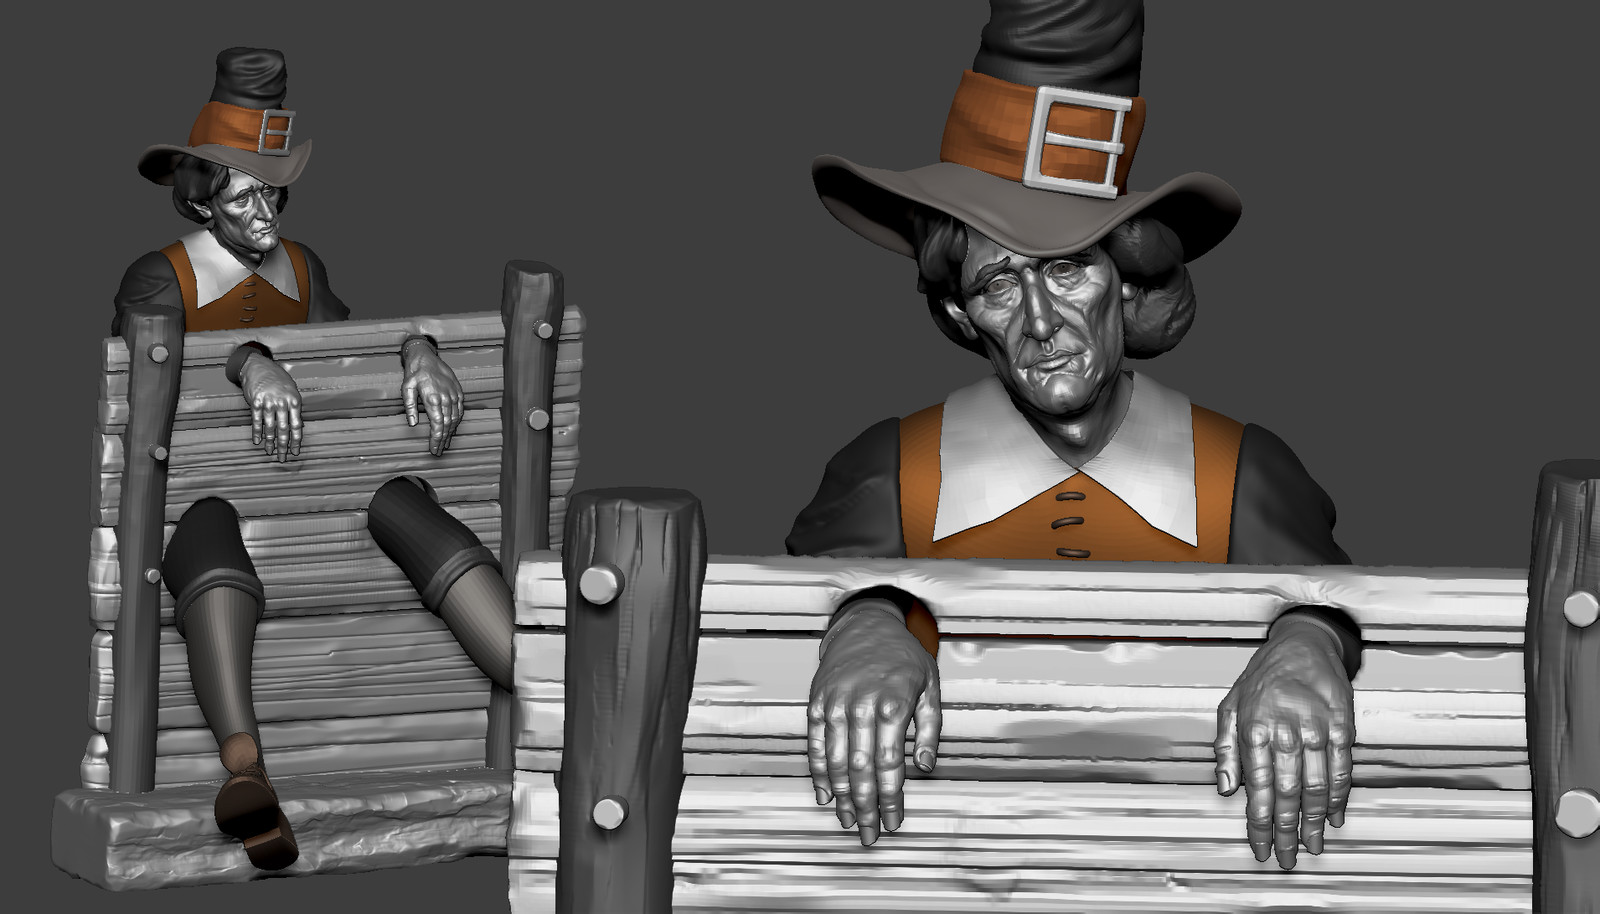 WIP block in Zbrush - based upon a concept by Norman Rockwell